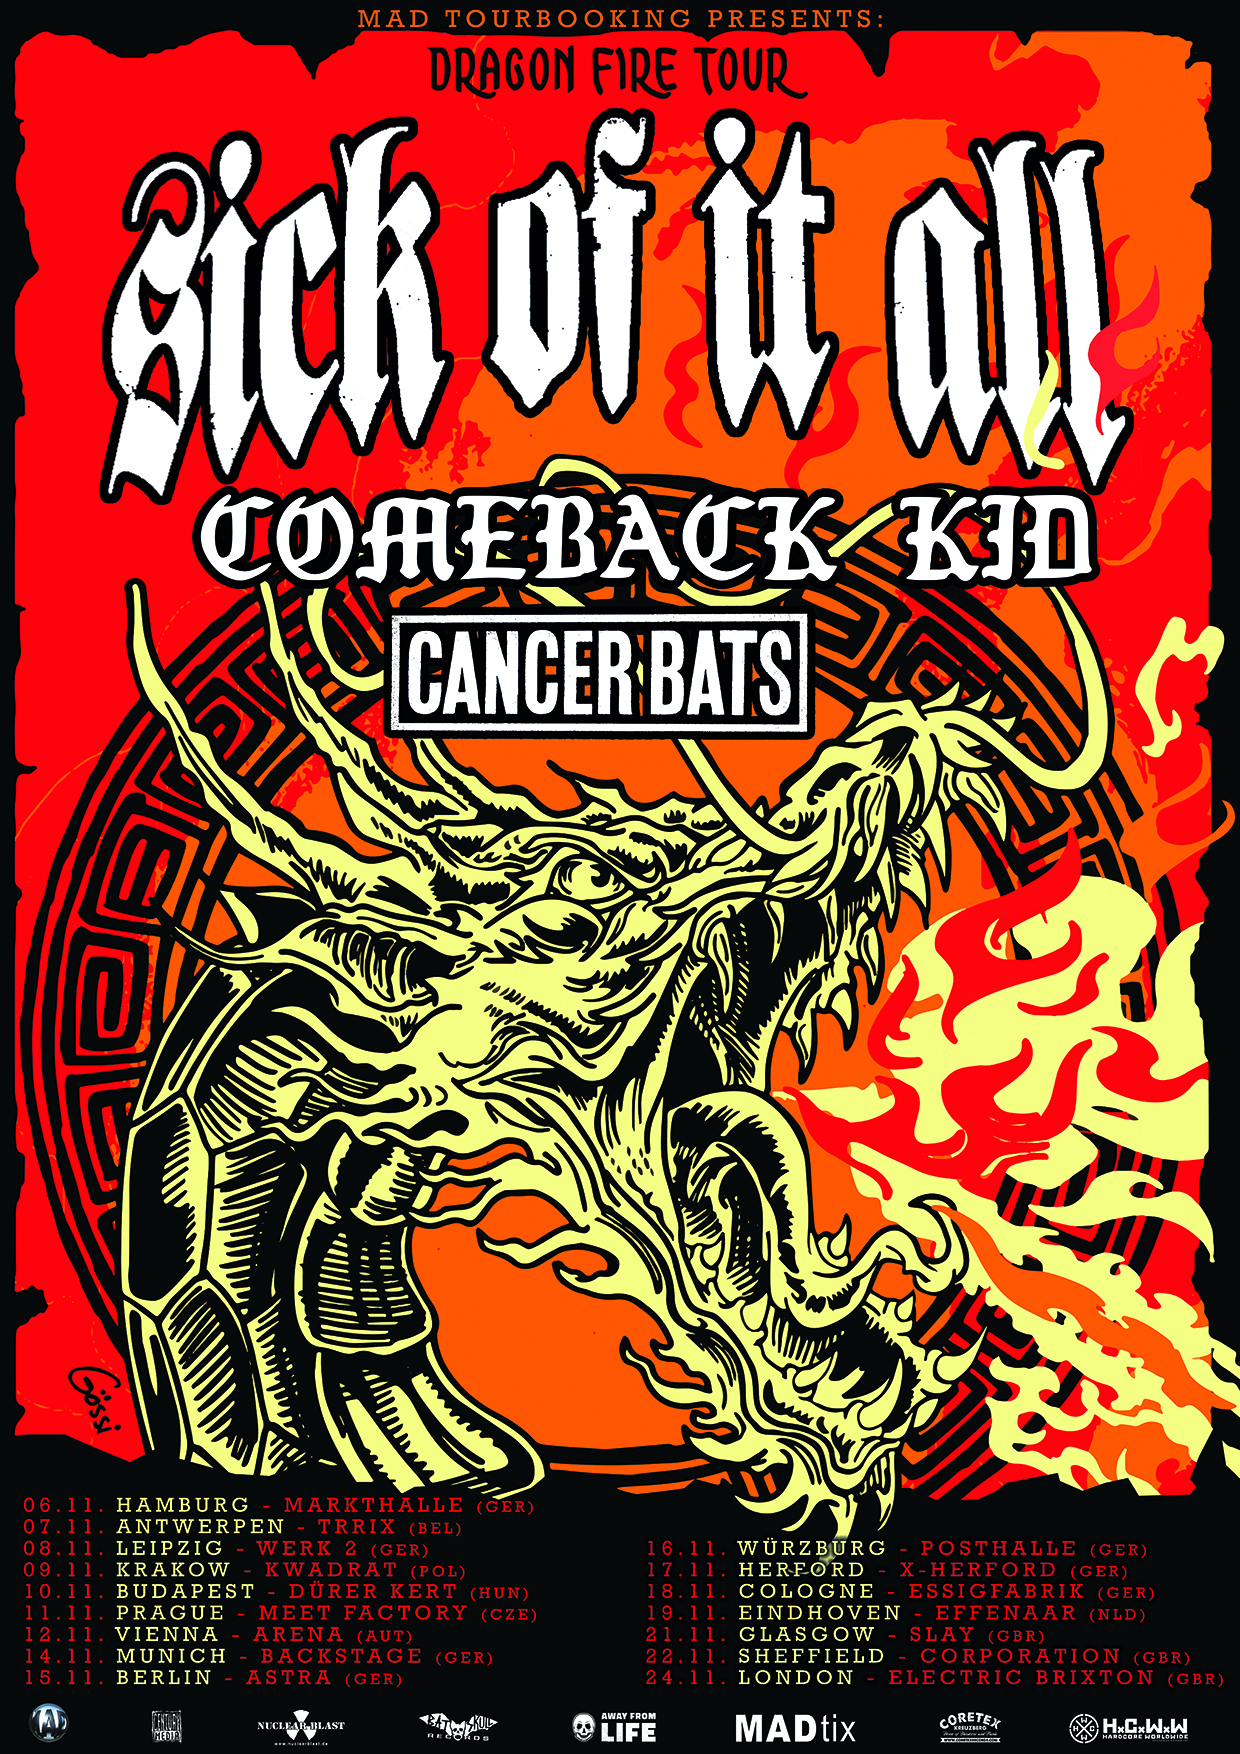 Europe with Comeback Kid & Cancer Bats